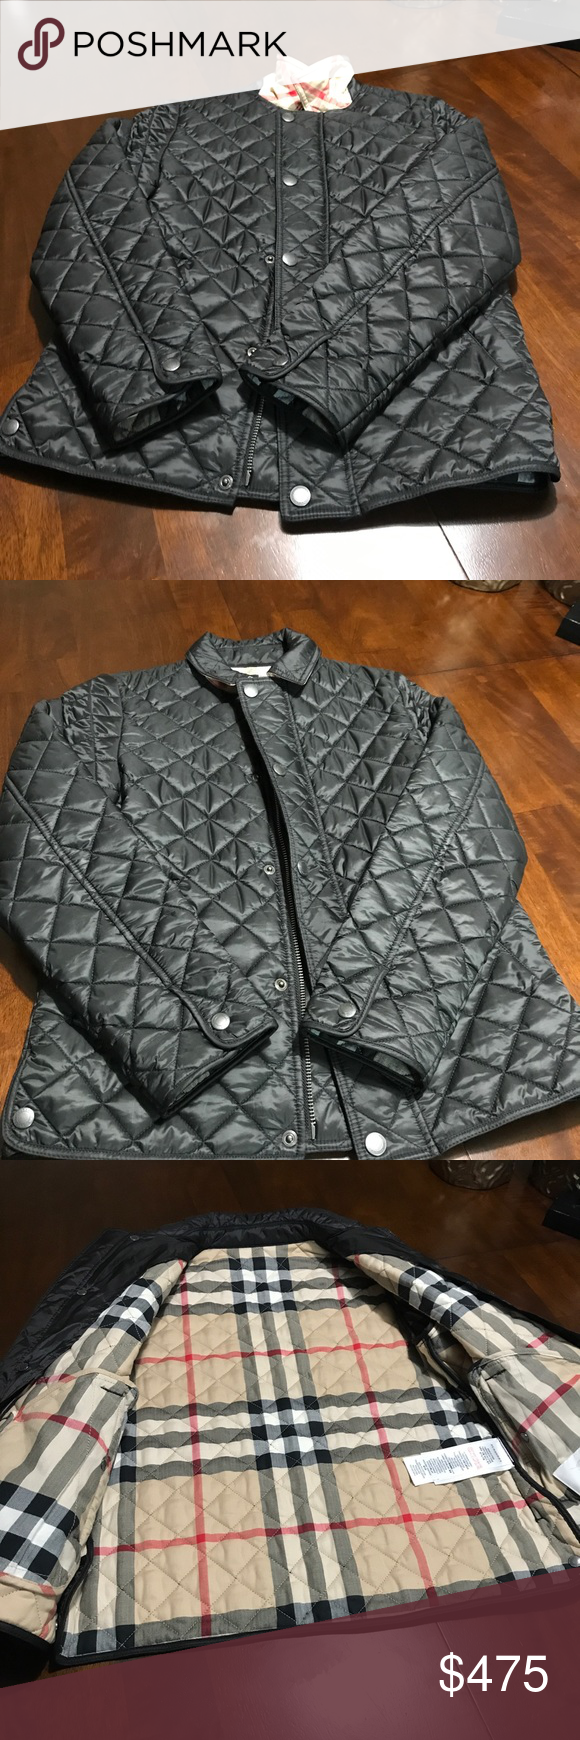 Burberry Boys Quilted Jacket New Without Tag Boutique